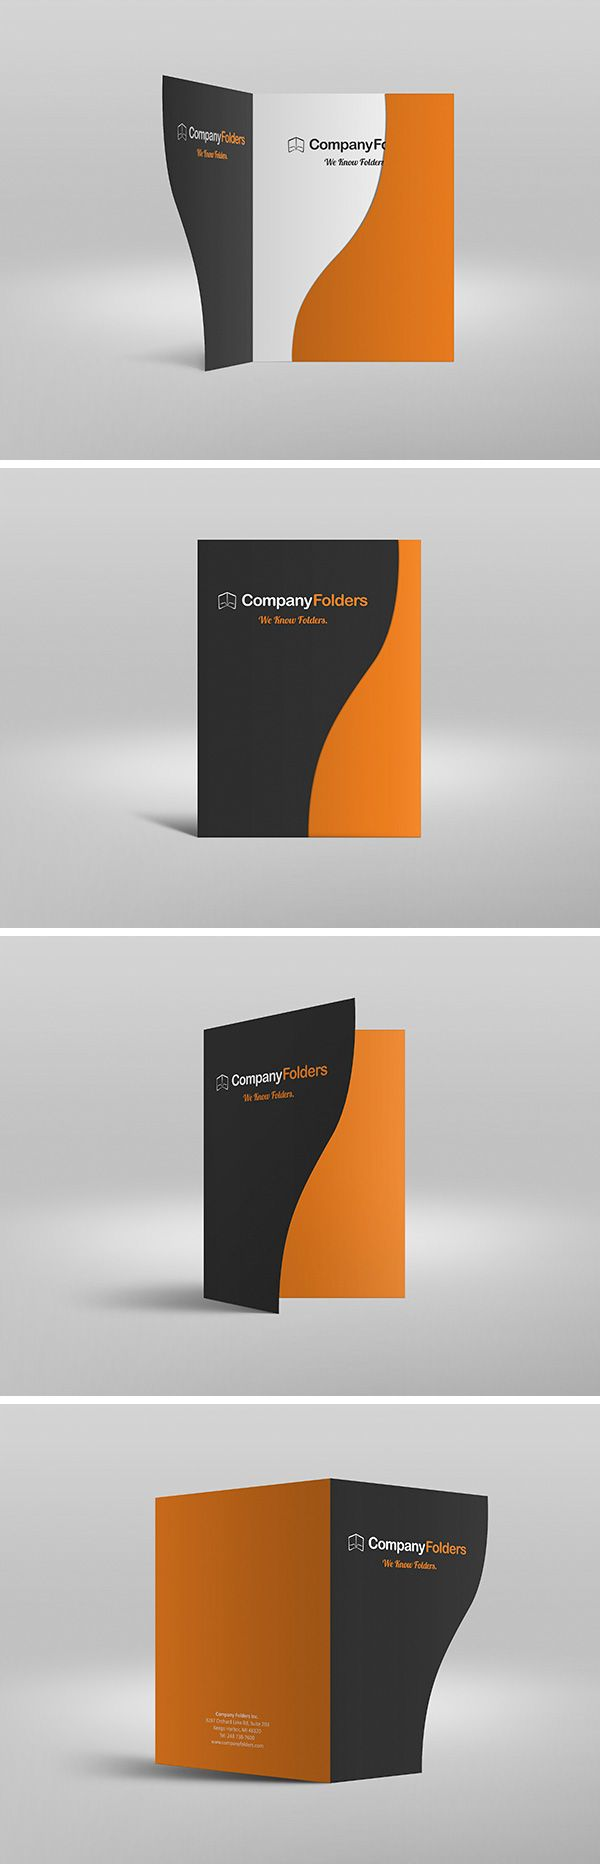 Today I'm happy to share with you this stylish folder mock-up that will help you create realistic presentations...